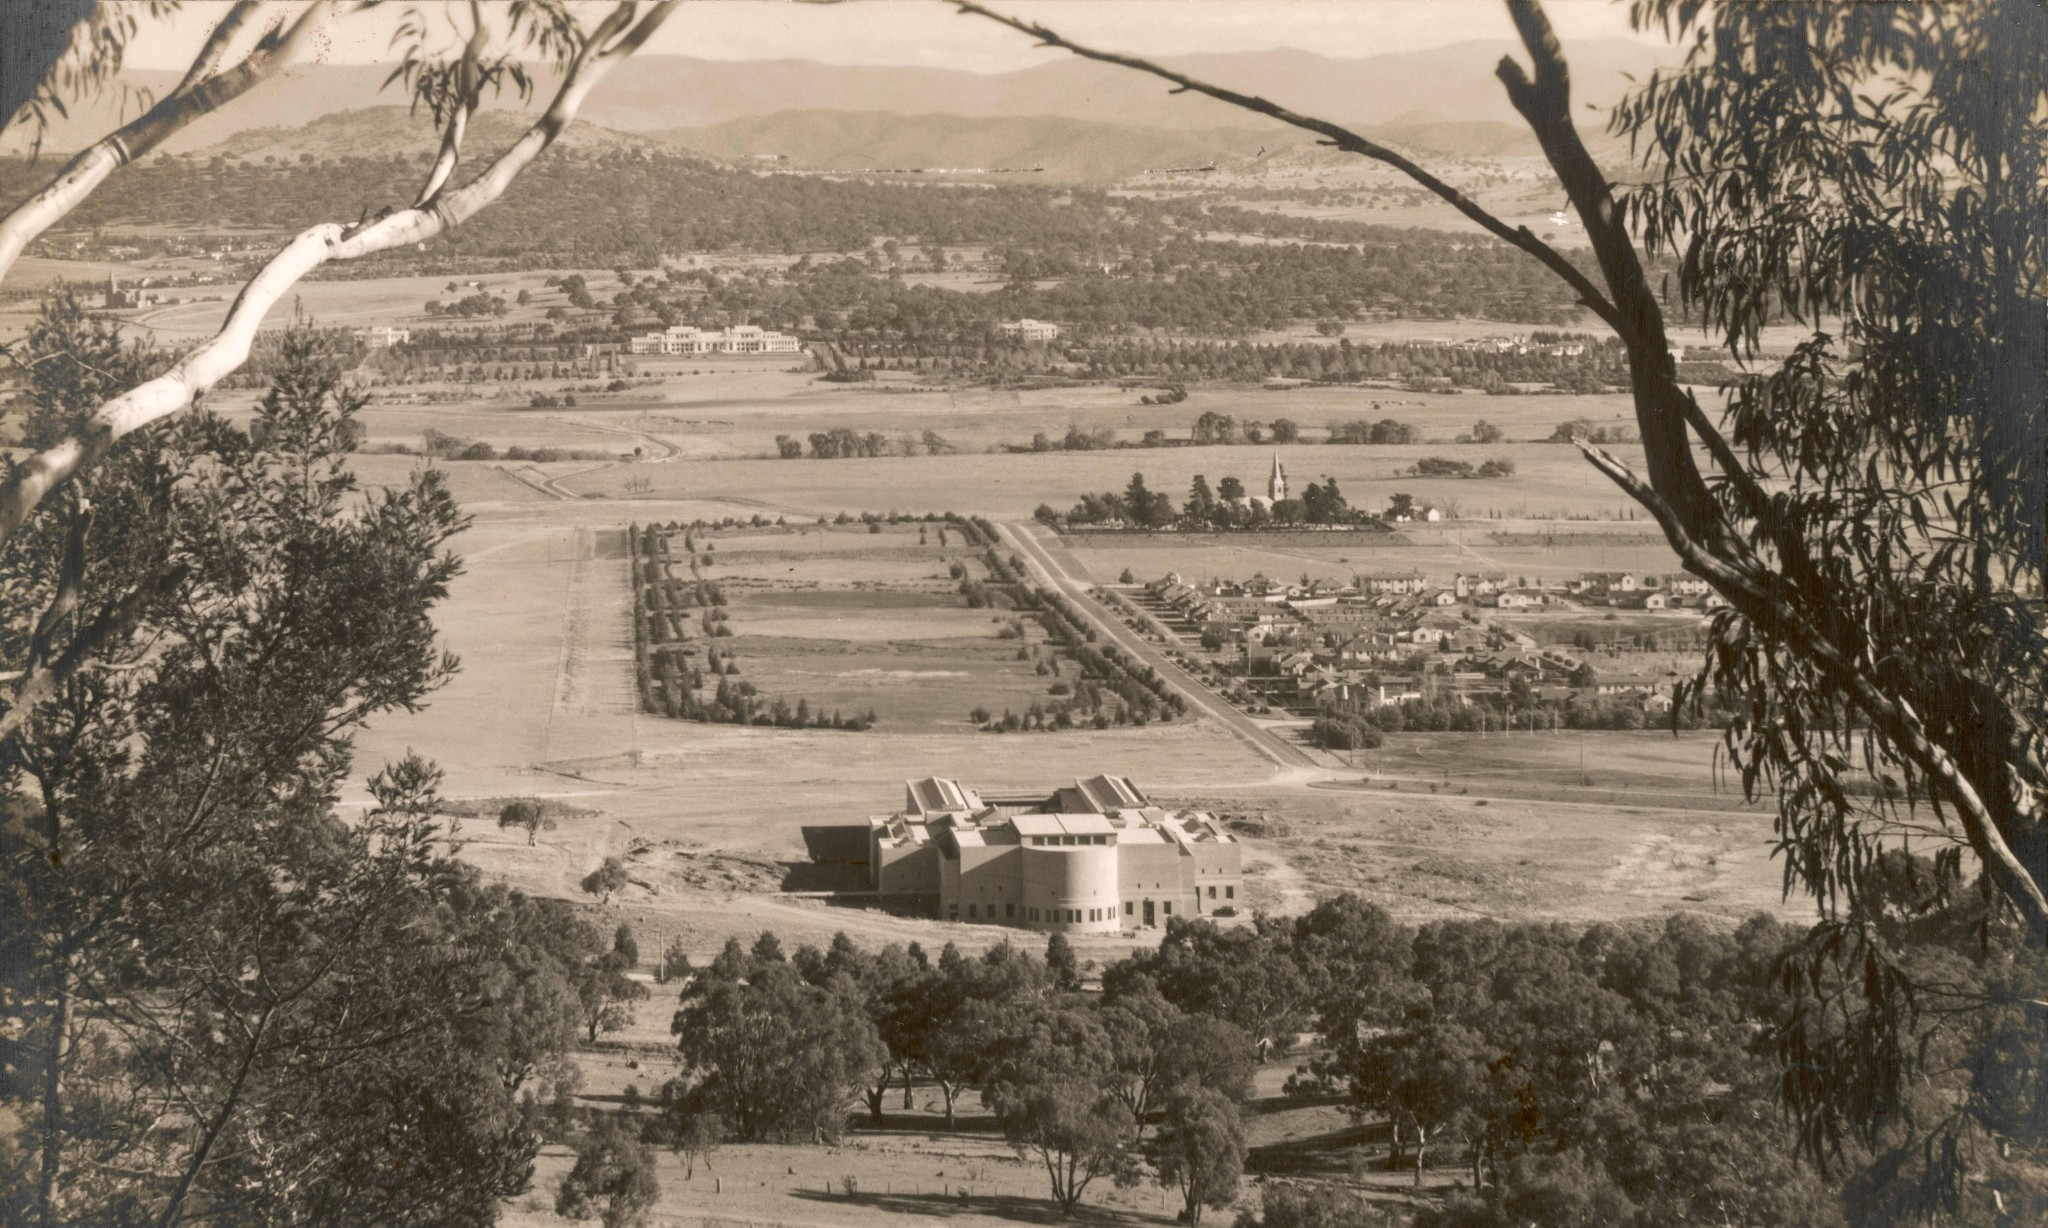 Story of cities #17: Canberra's vision of the ideal city gets mired in 'mediocrity'